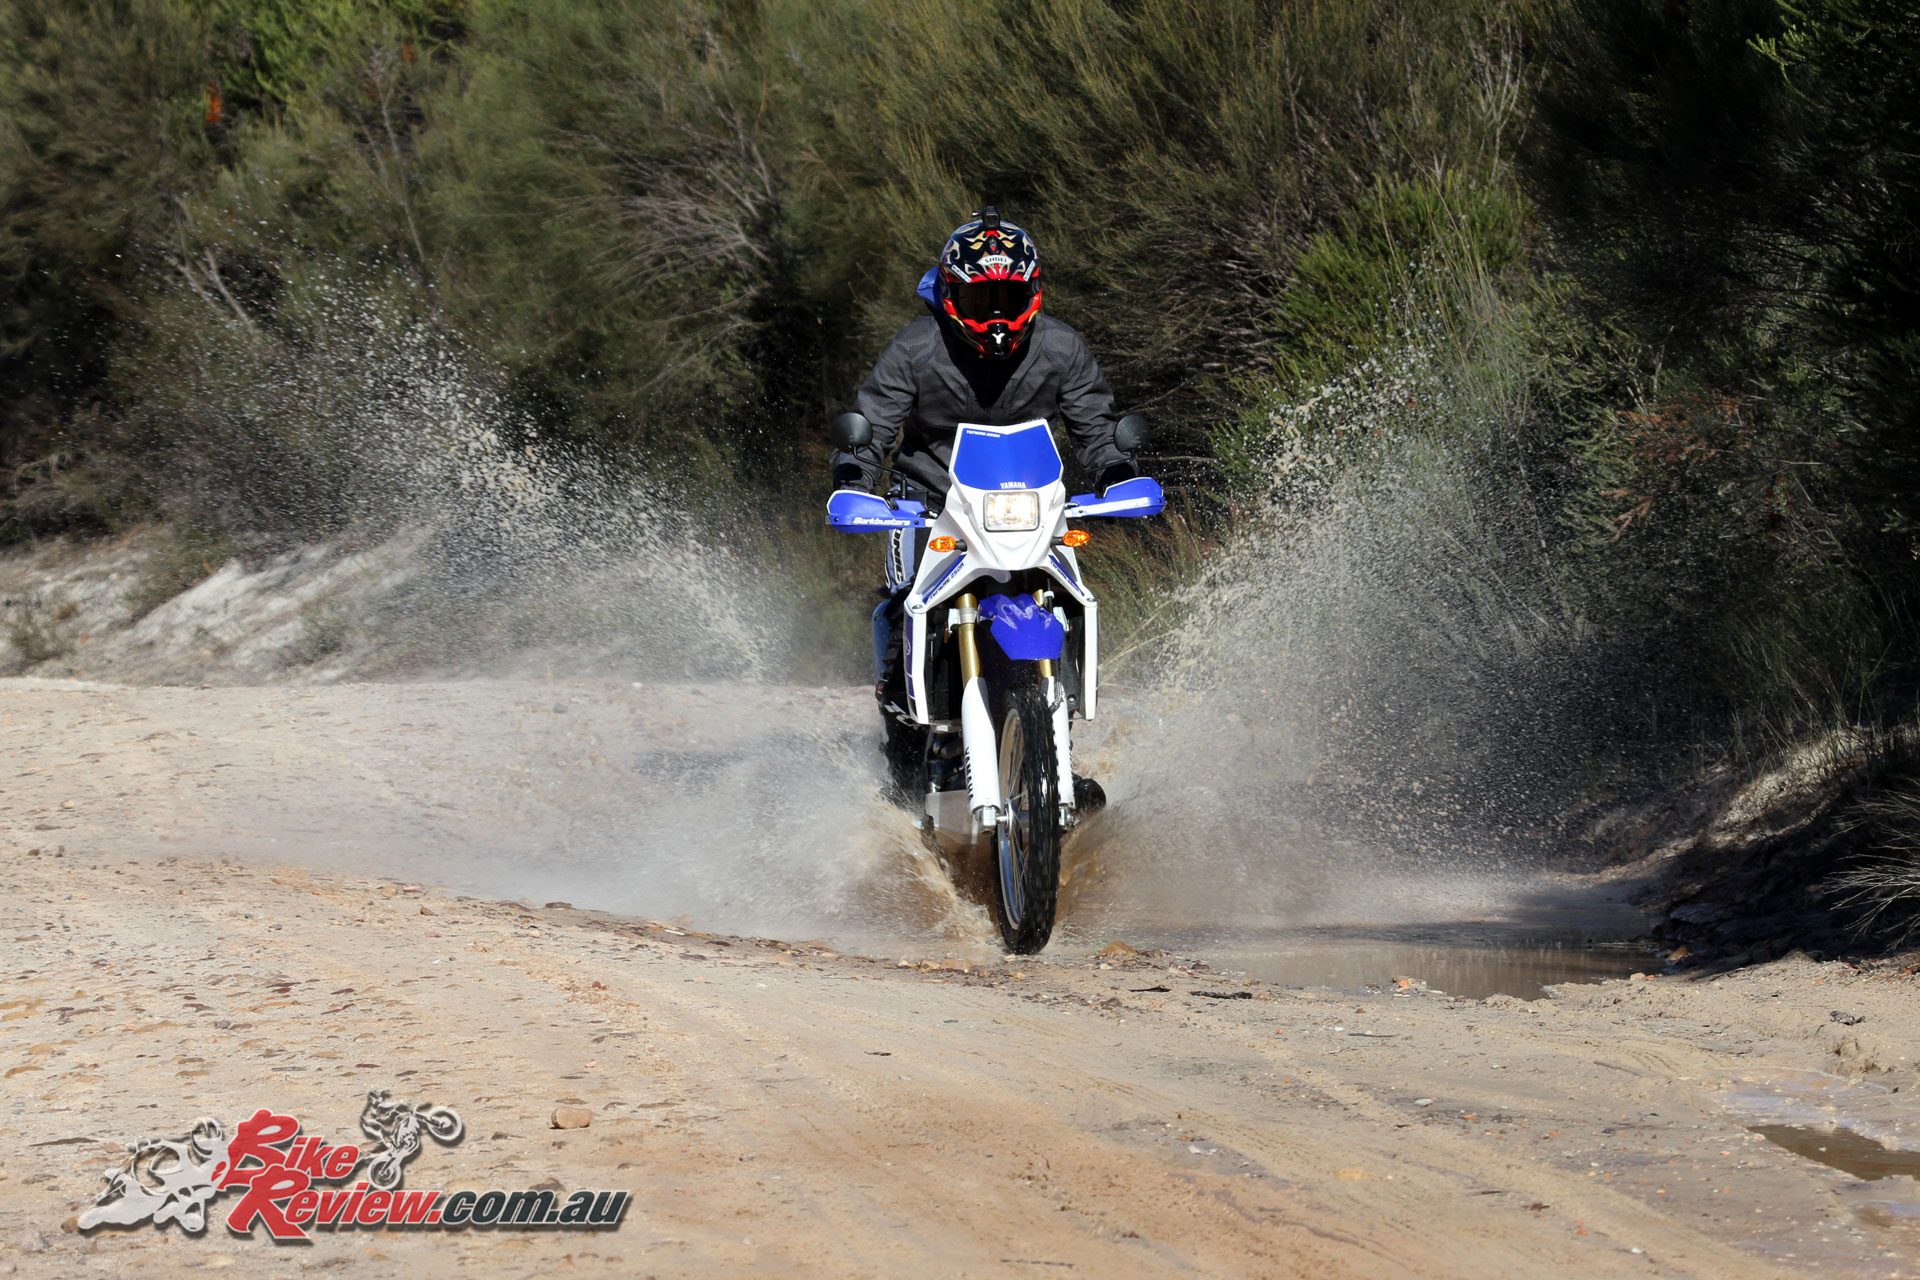 Yamaha have always been good at building genuinely versatile road trail bikes and the WR250R has kept that tradition going for a while now.